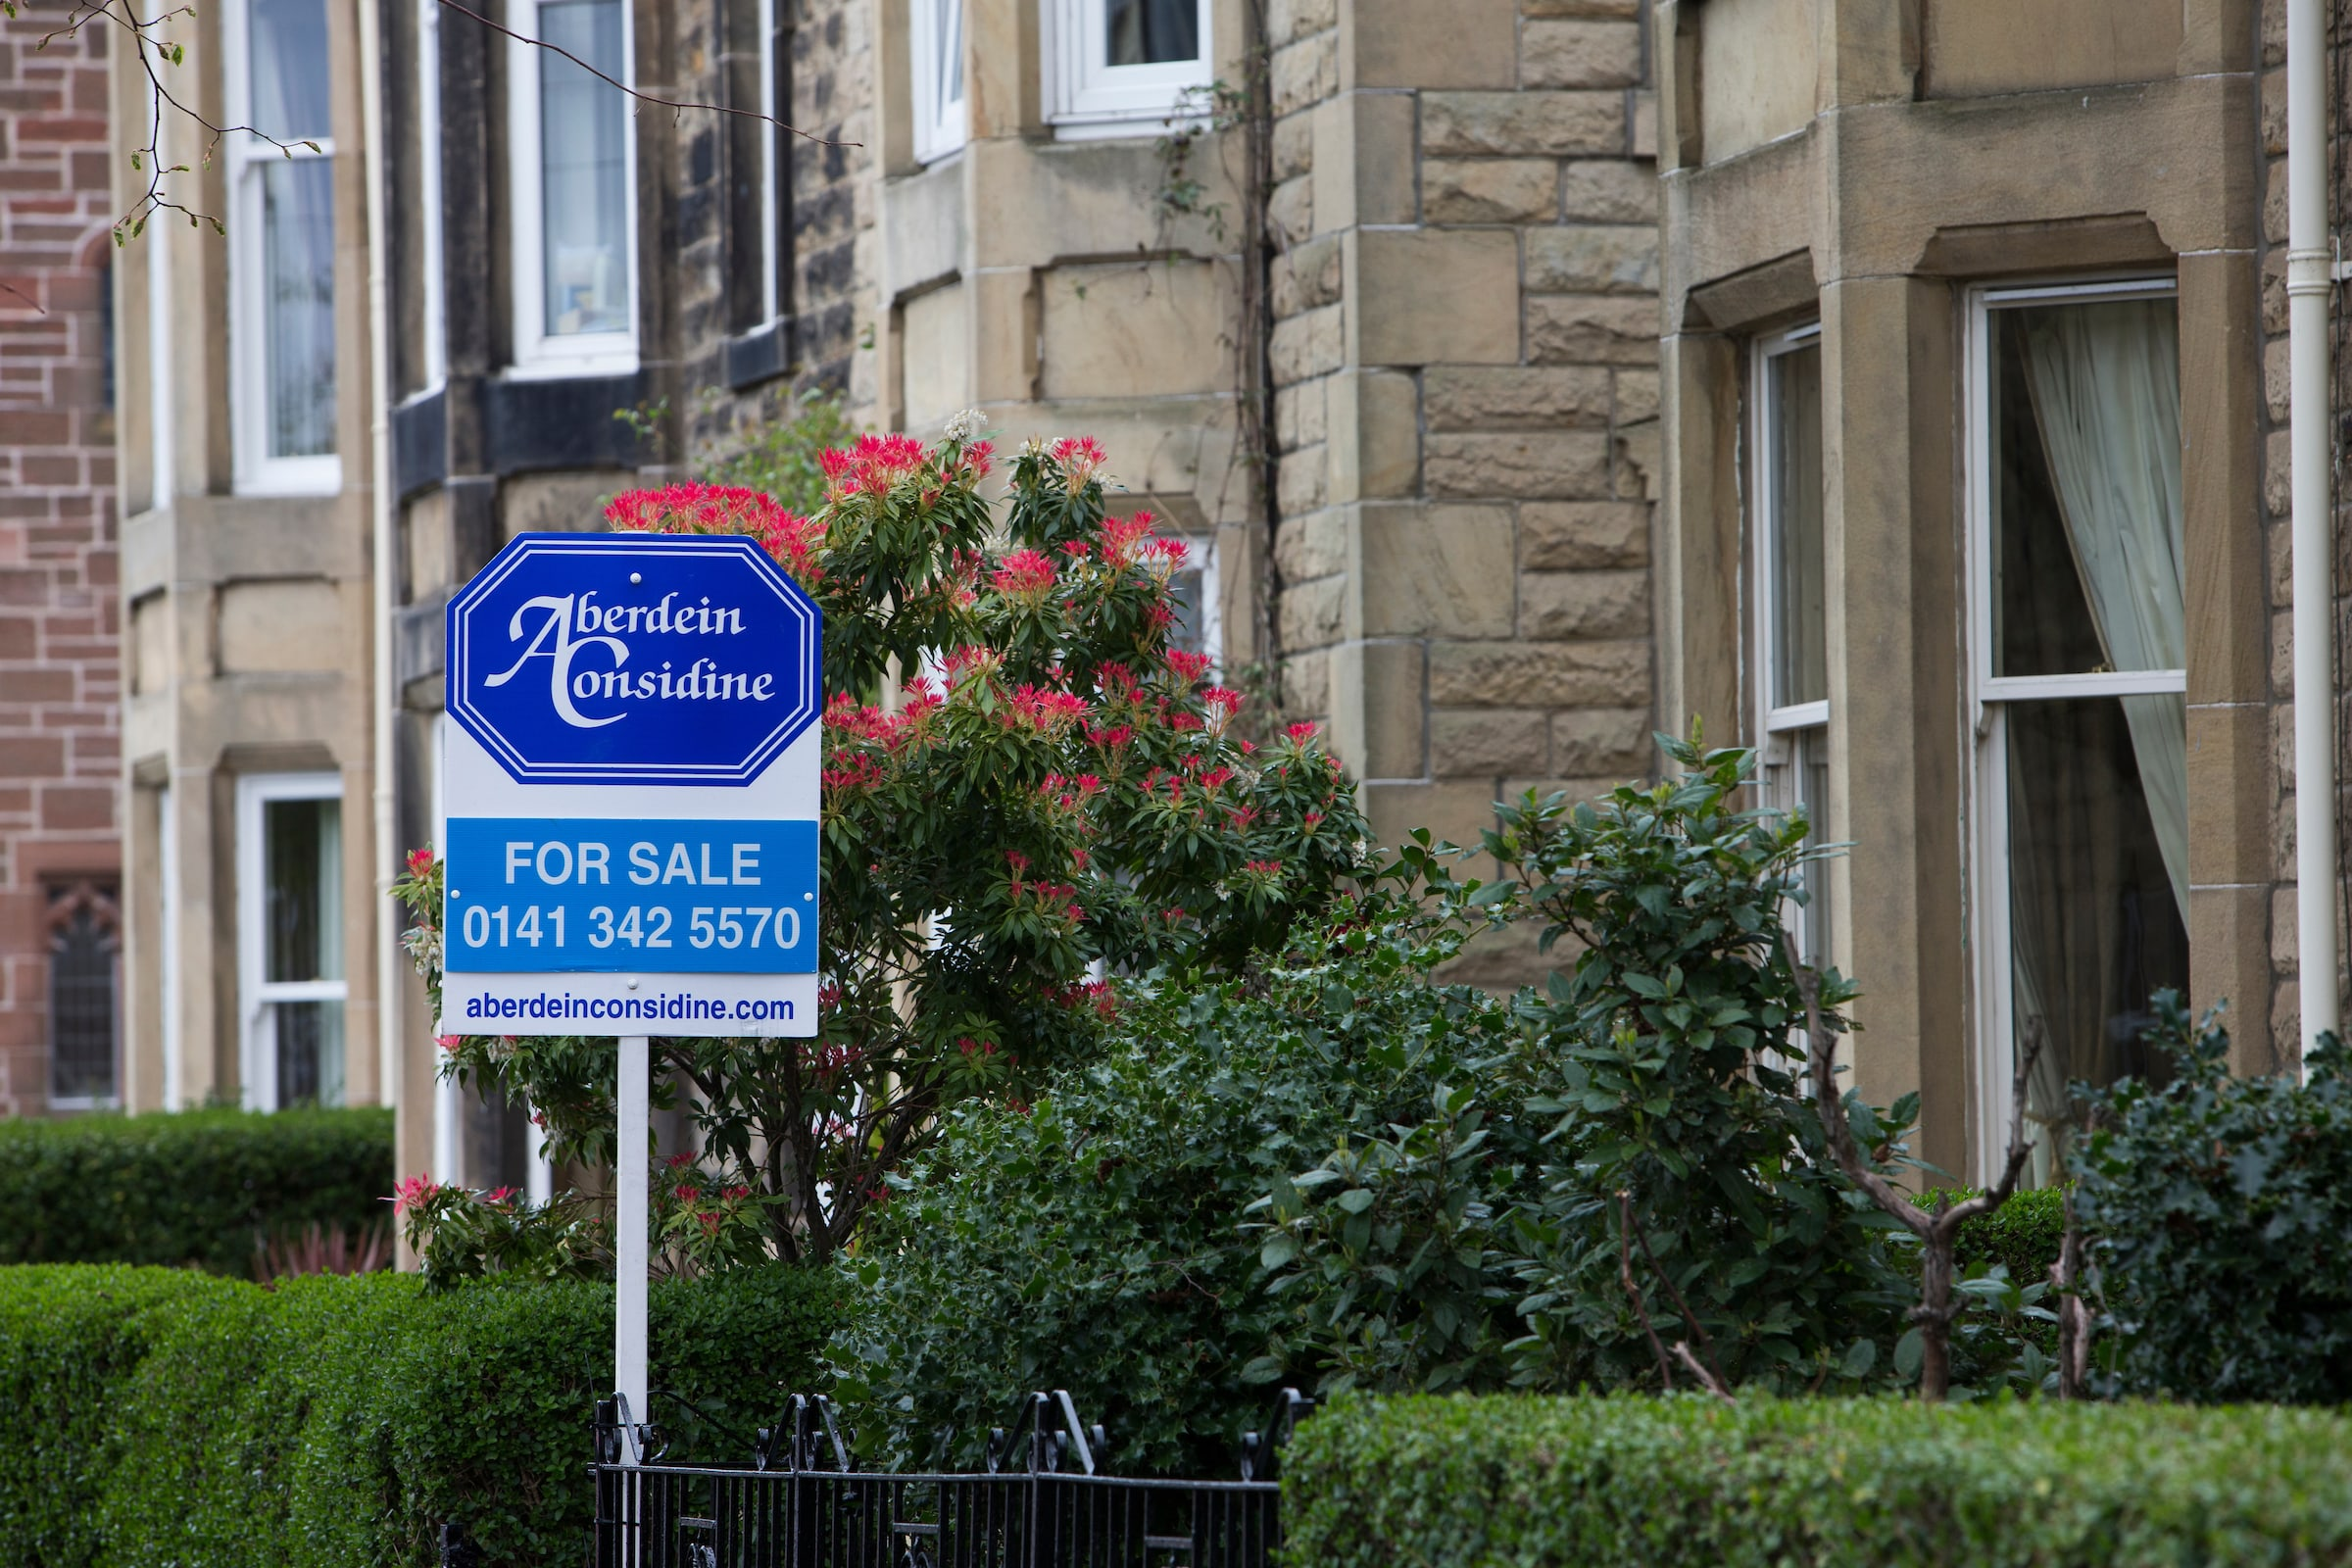 UPDATE: Scottish property market to re-open on June 29th